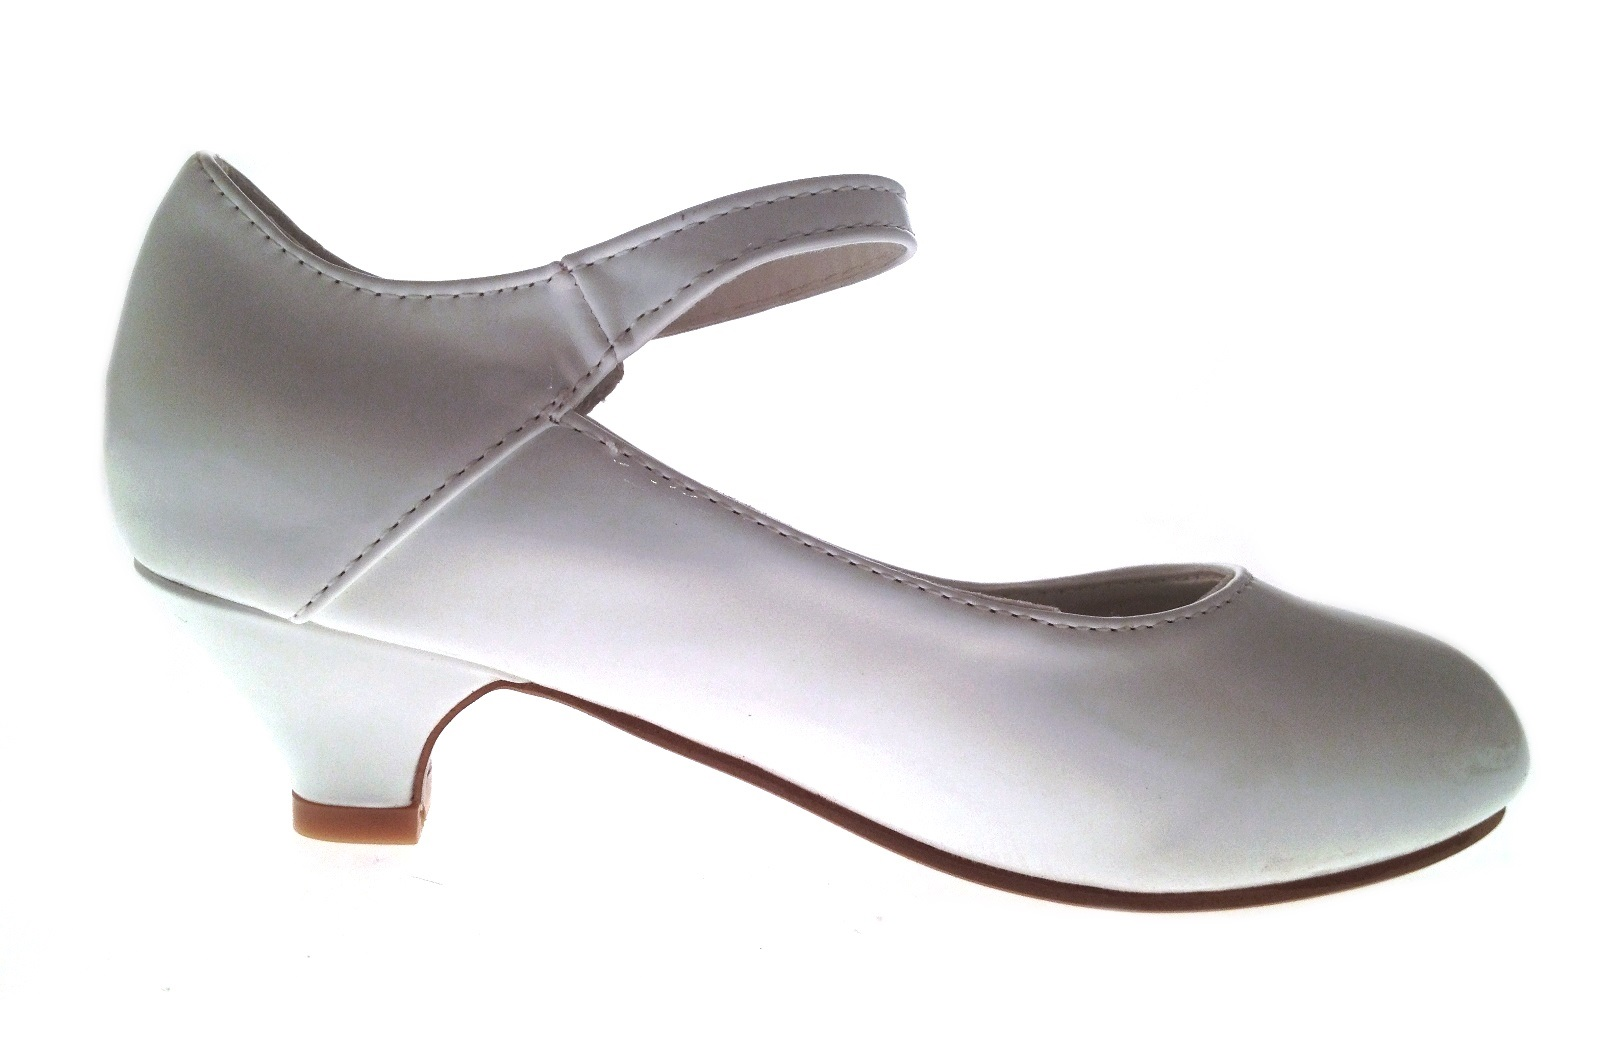 598a17a84be Details about Girls Kids Faux Leather Mary Jane T Bar Party Shoes Low Heels  Wedding Size 10-2